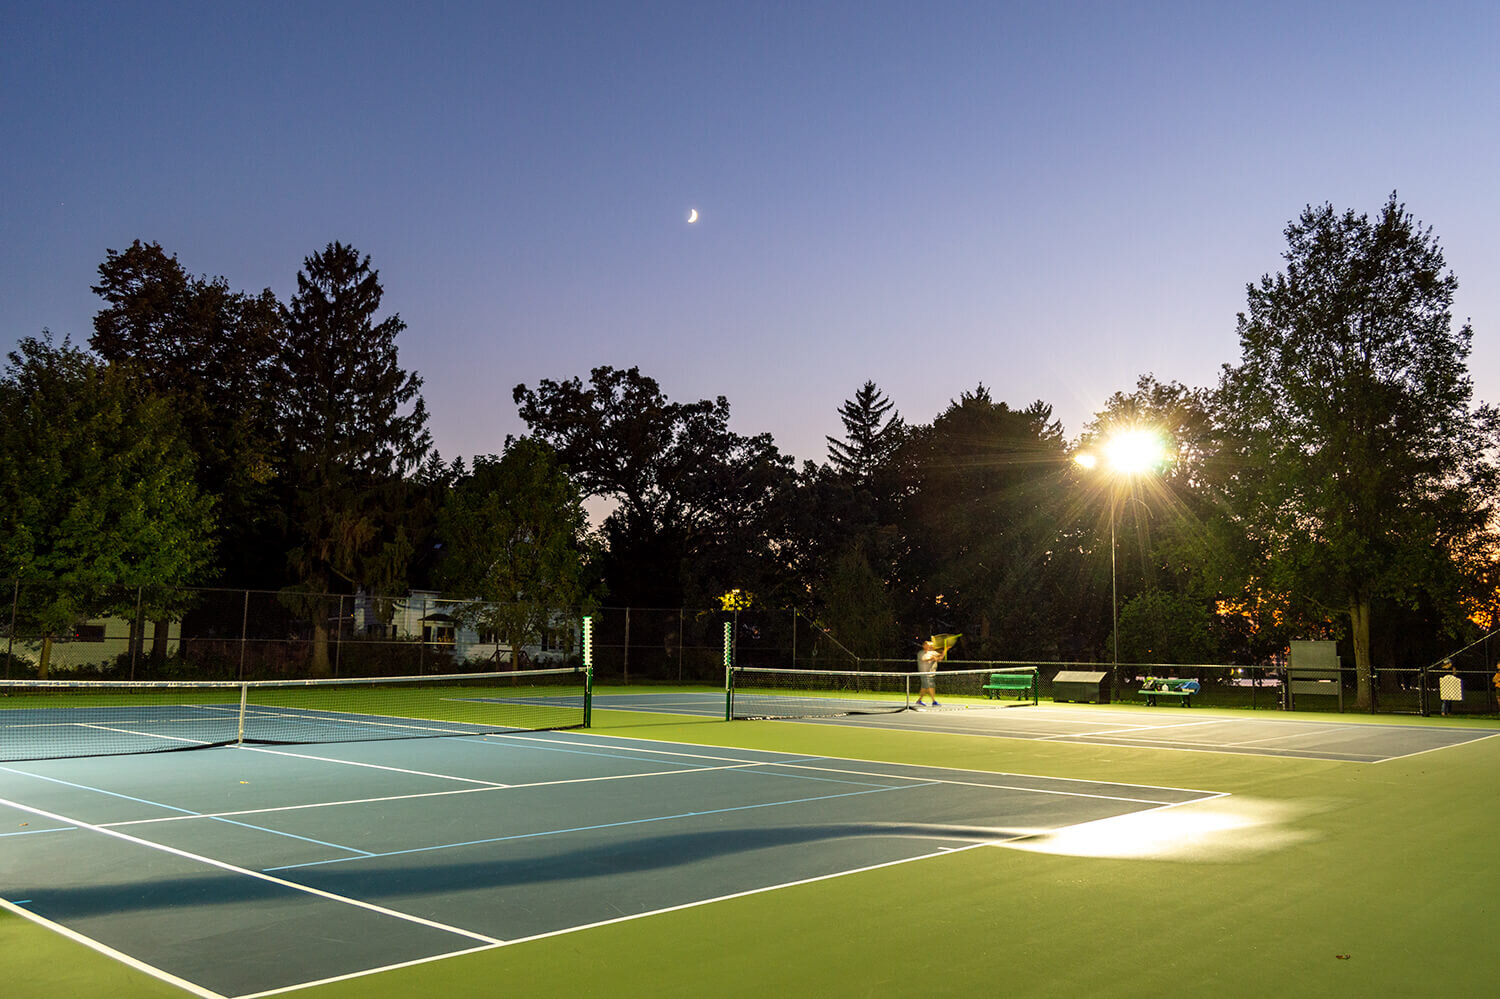 tennis-court-sports-lighting-1.jpg